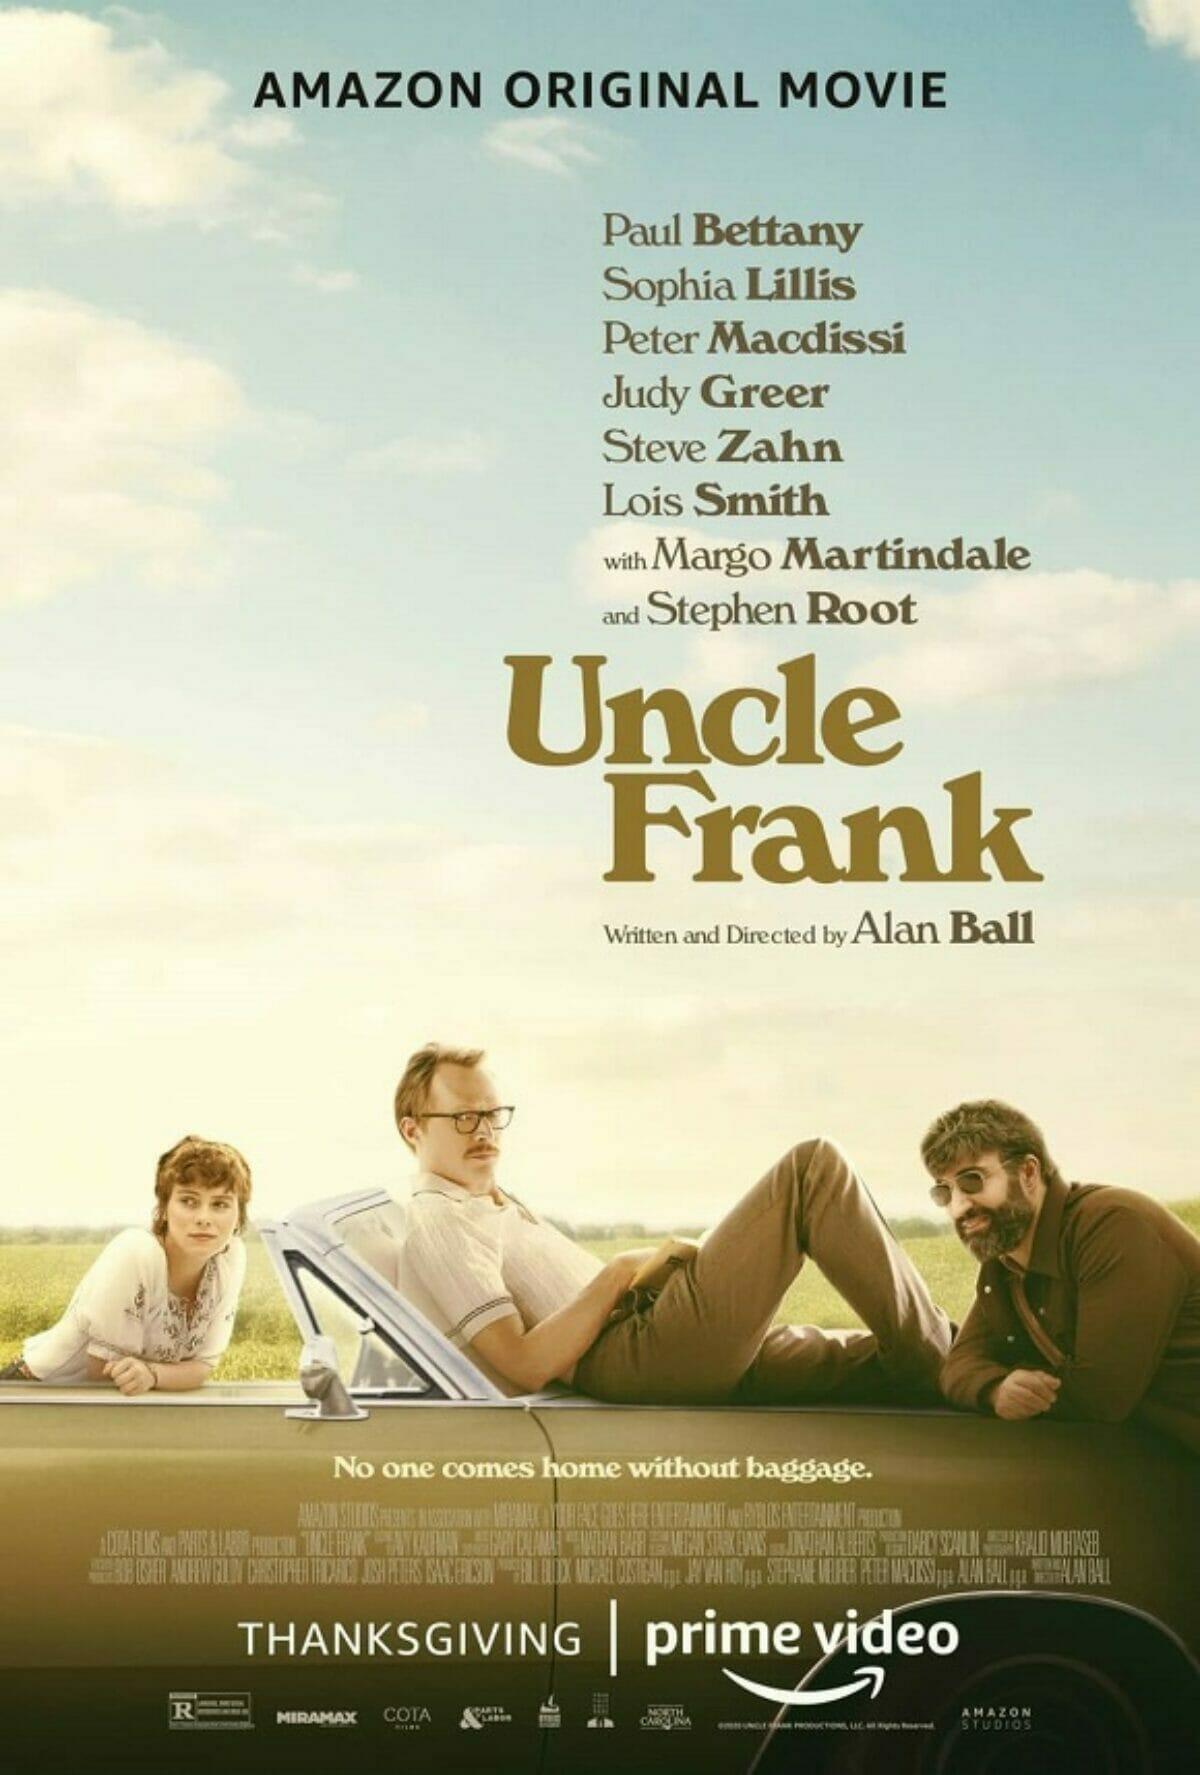 Uncle-Frank-Movie-Poster-Amazon